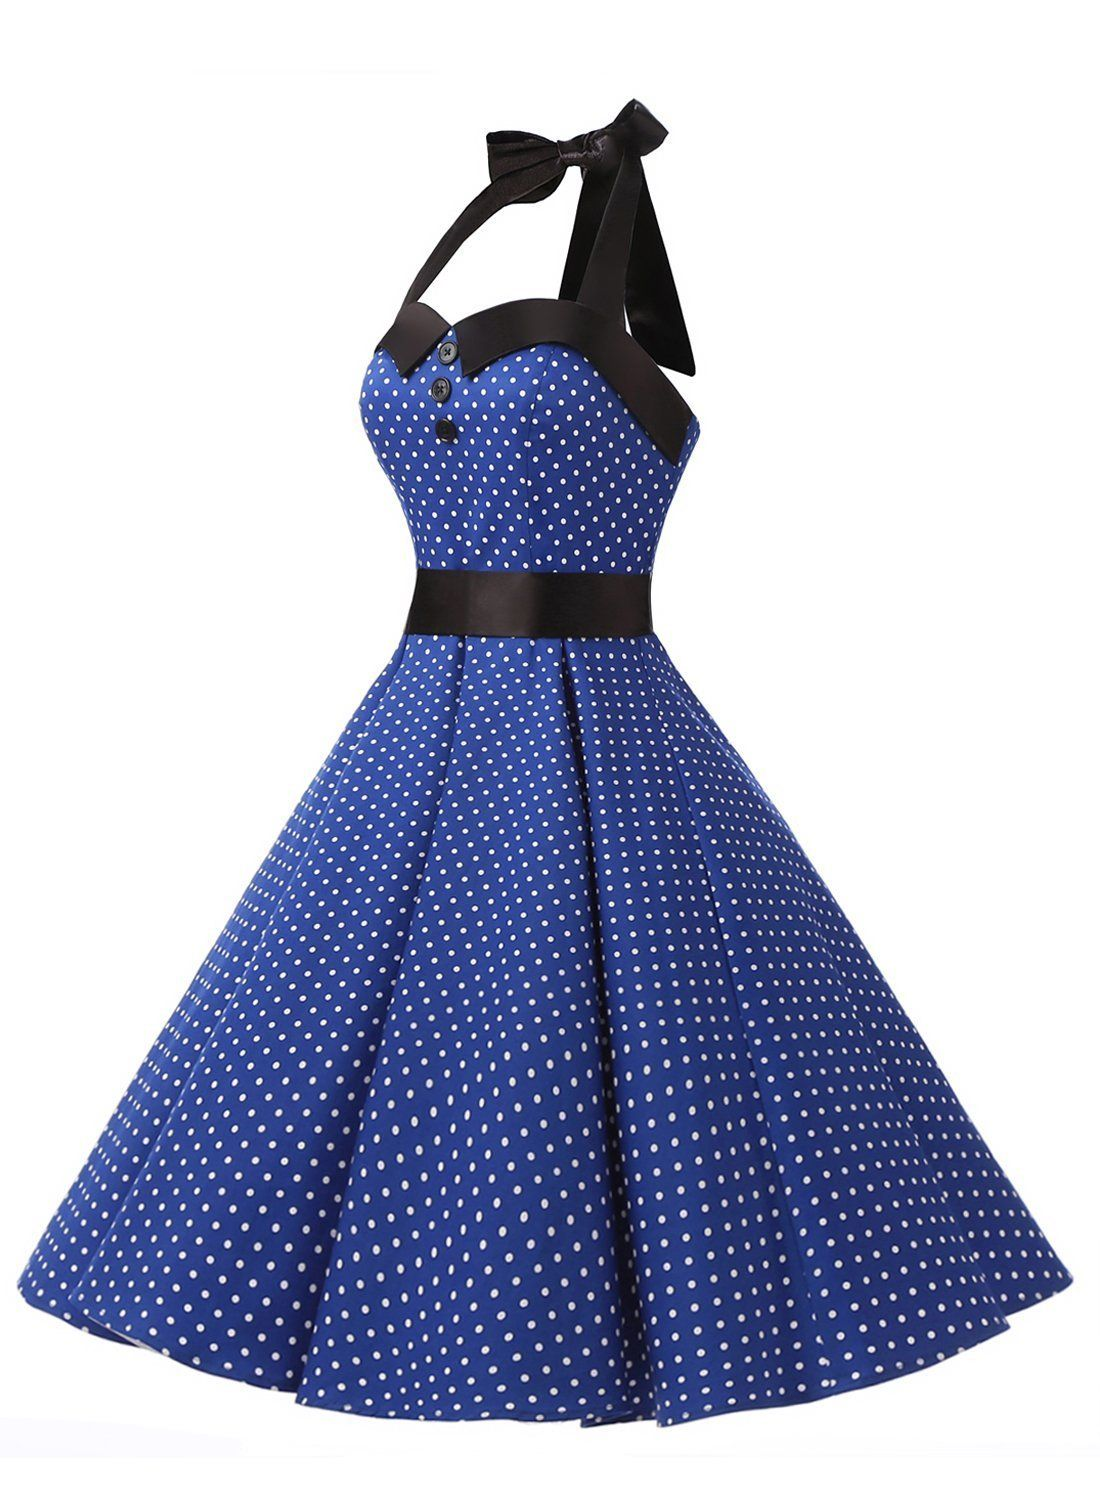 7840d4787df Amazon.com  Dressystar Vintage Polka Dot Retro Cocktail Prom Dresses 50 s  60 s Rockabilly Bandage  Clothing